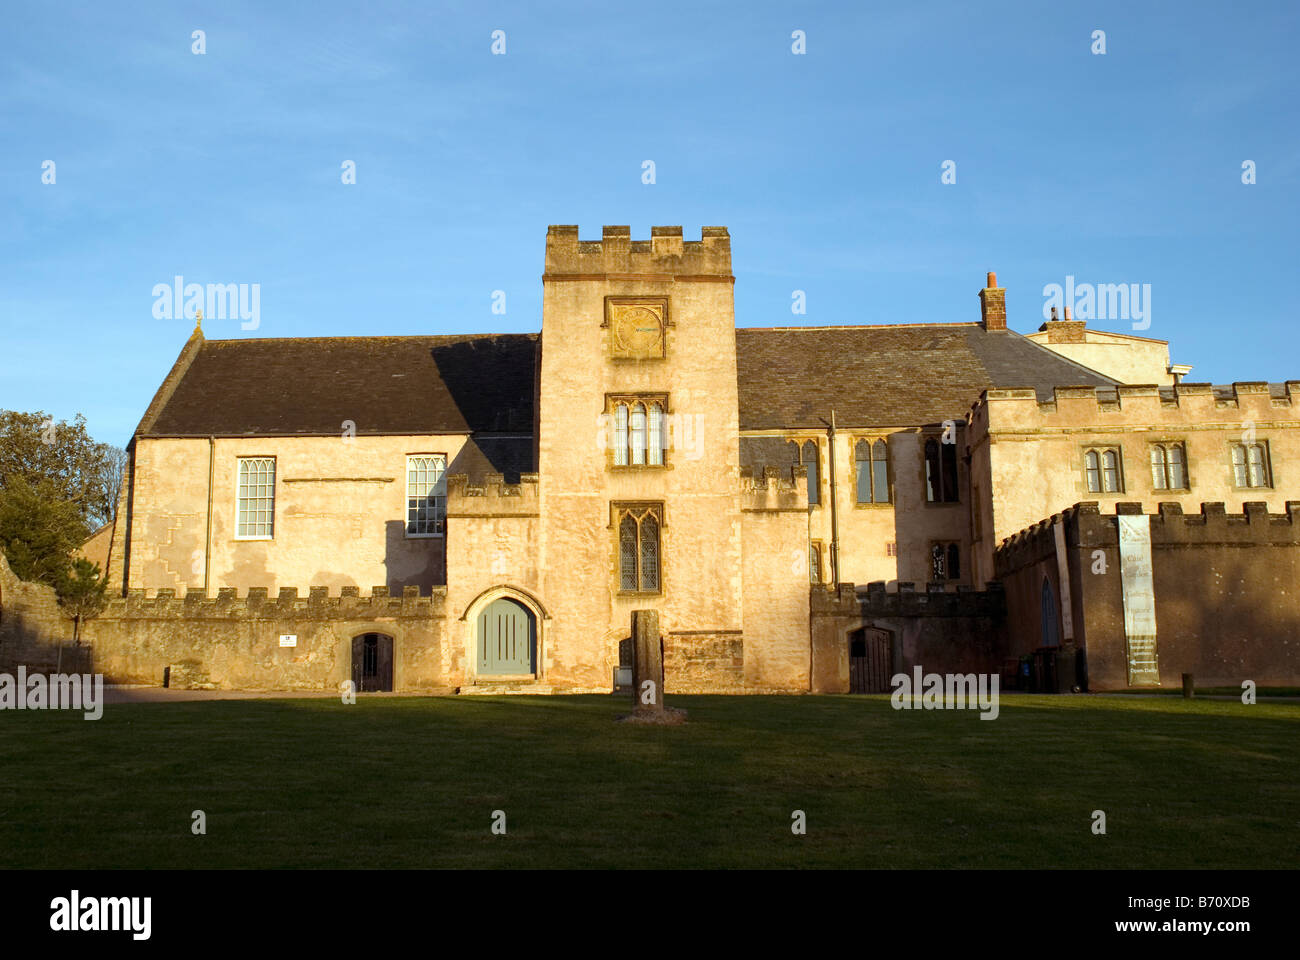 Torre Abbey is the oldest building in Torquay. It has a story spanning 800 years Abbey,Premonstratensian - Stock Image